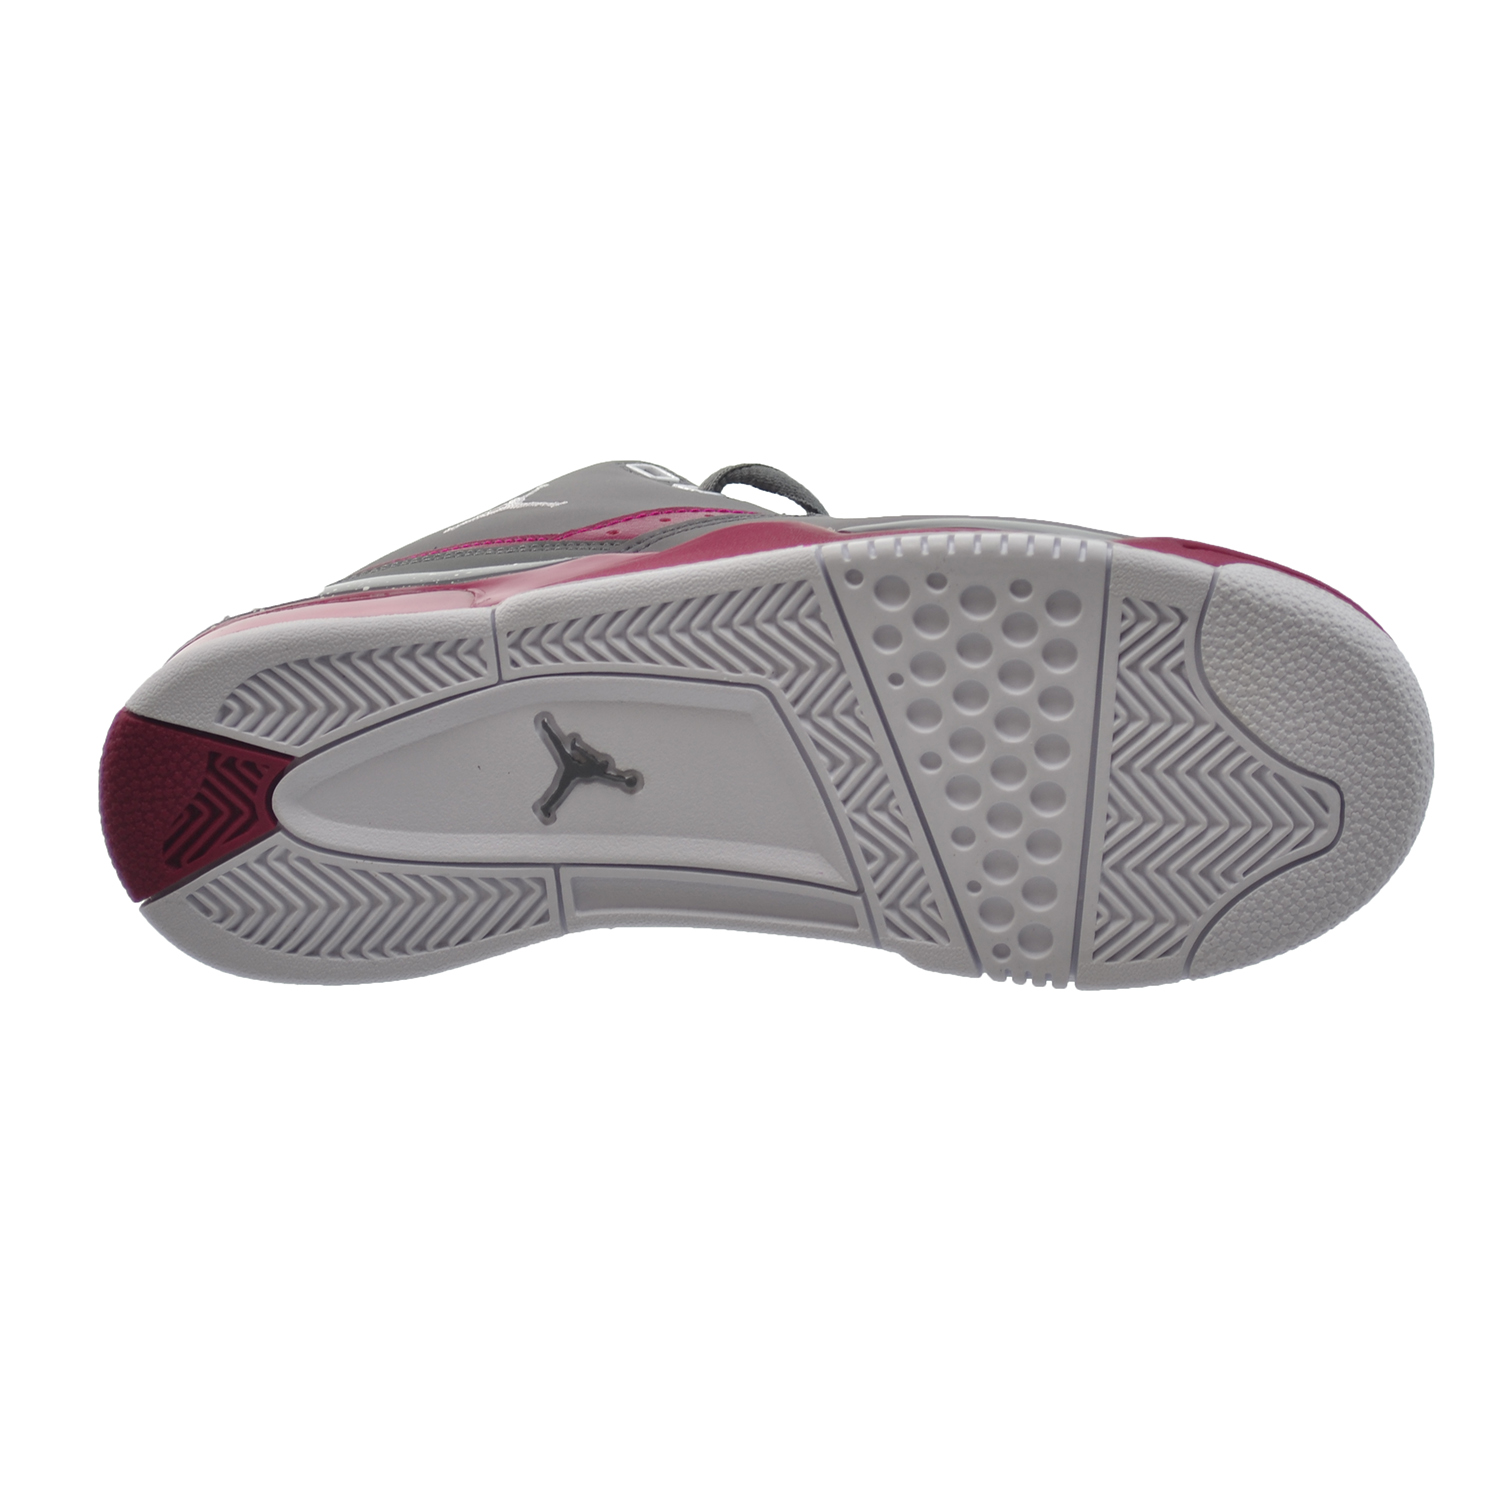 a9e9d4552d7d99 Jordan Flight 23 GG Big Kids  Shoes Cool Grey White-Sport Fuchsia 768910-026